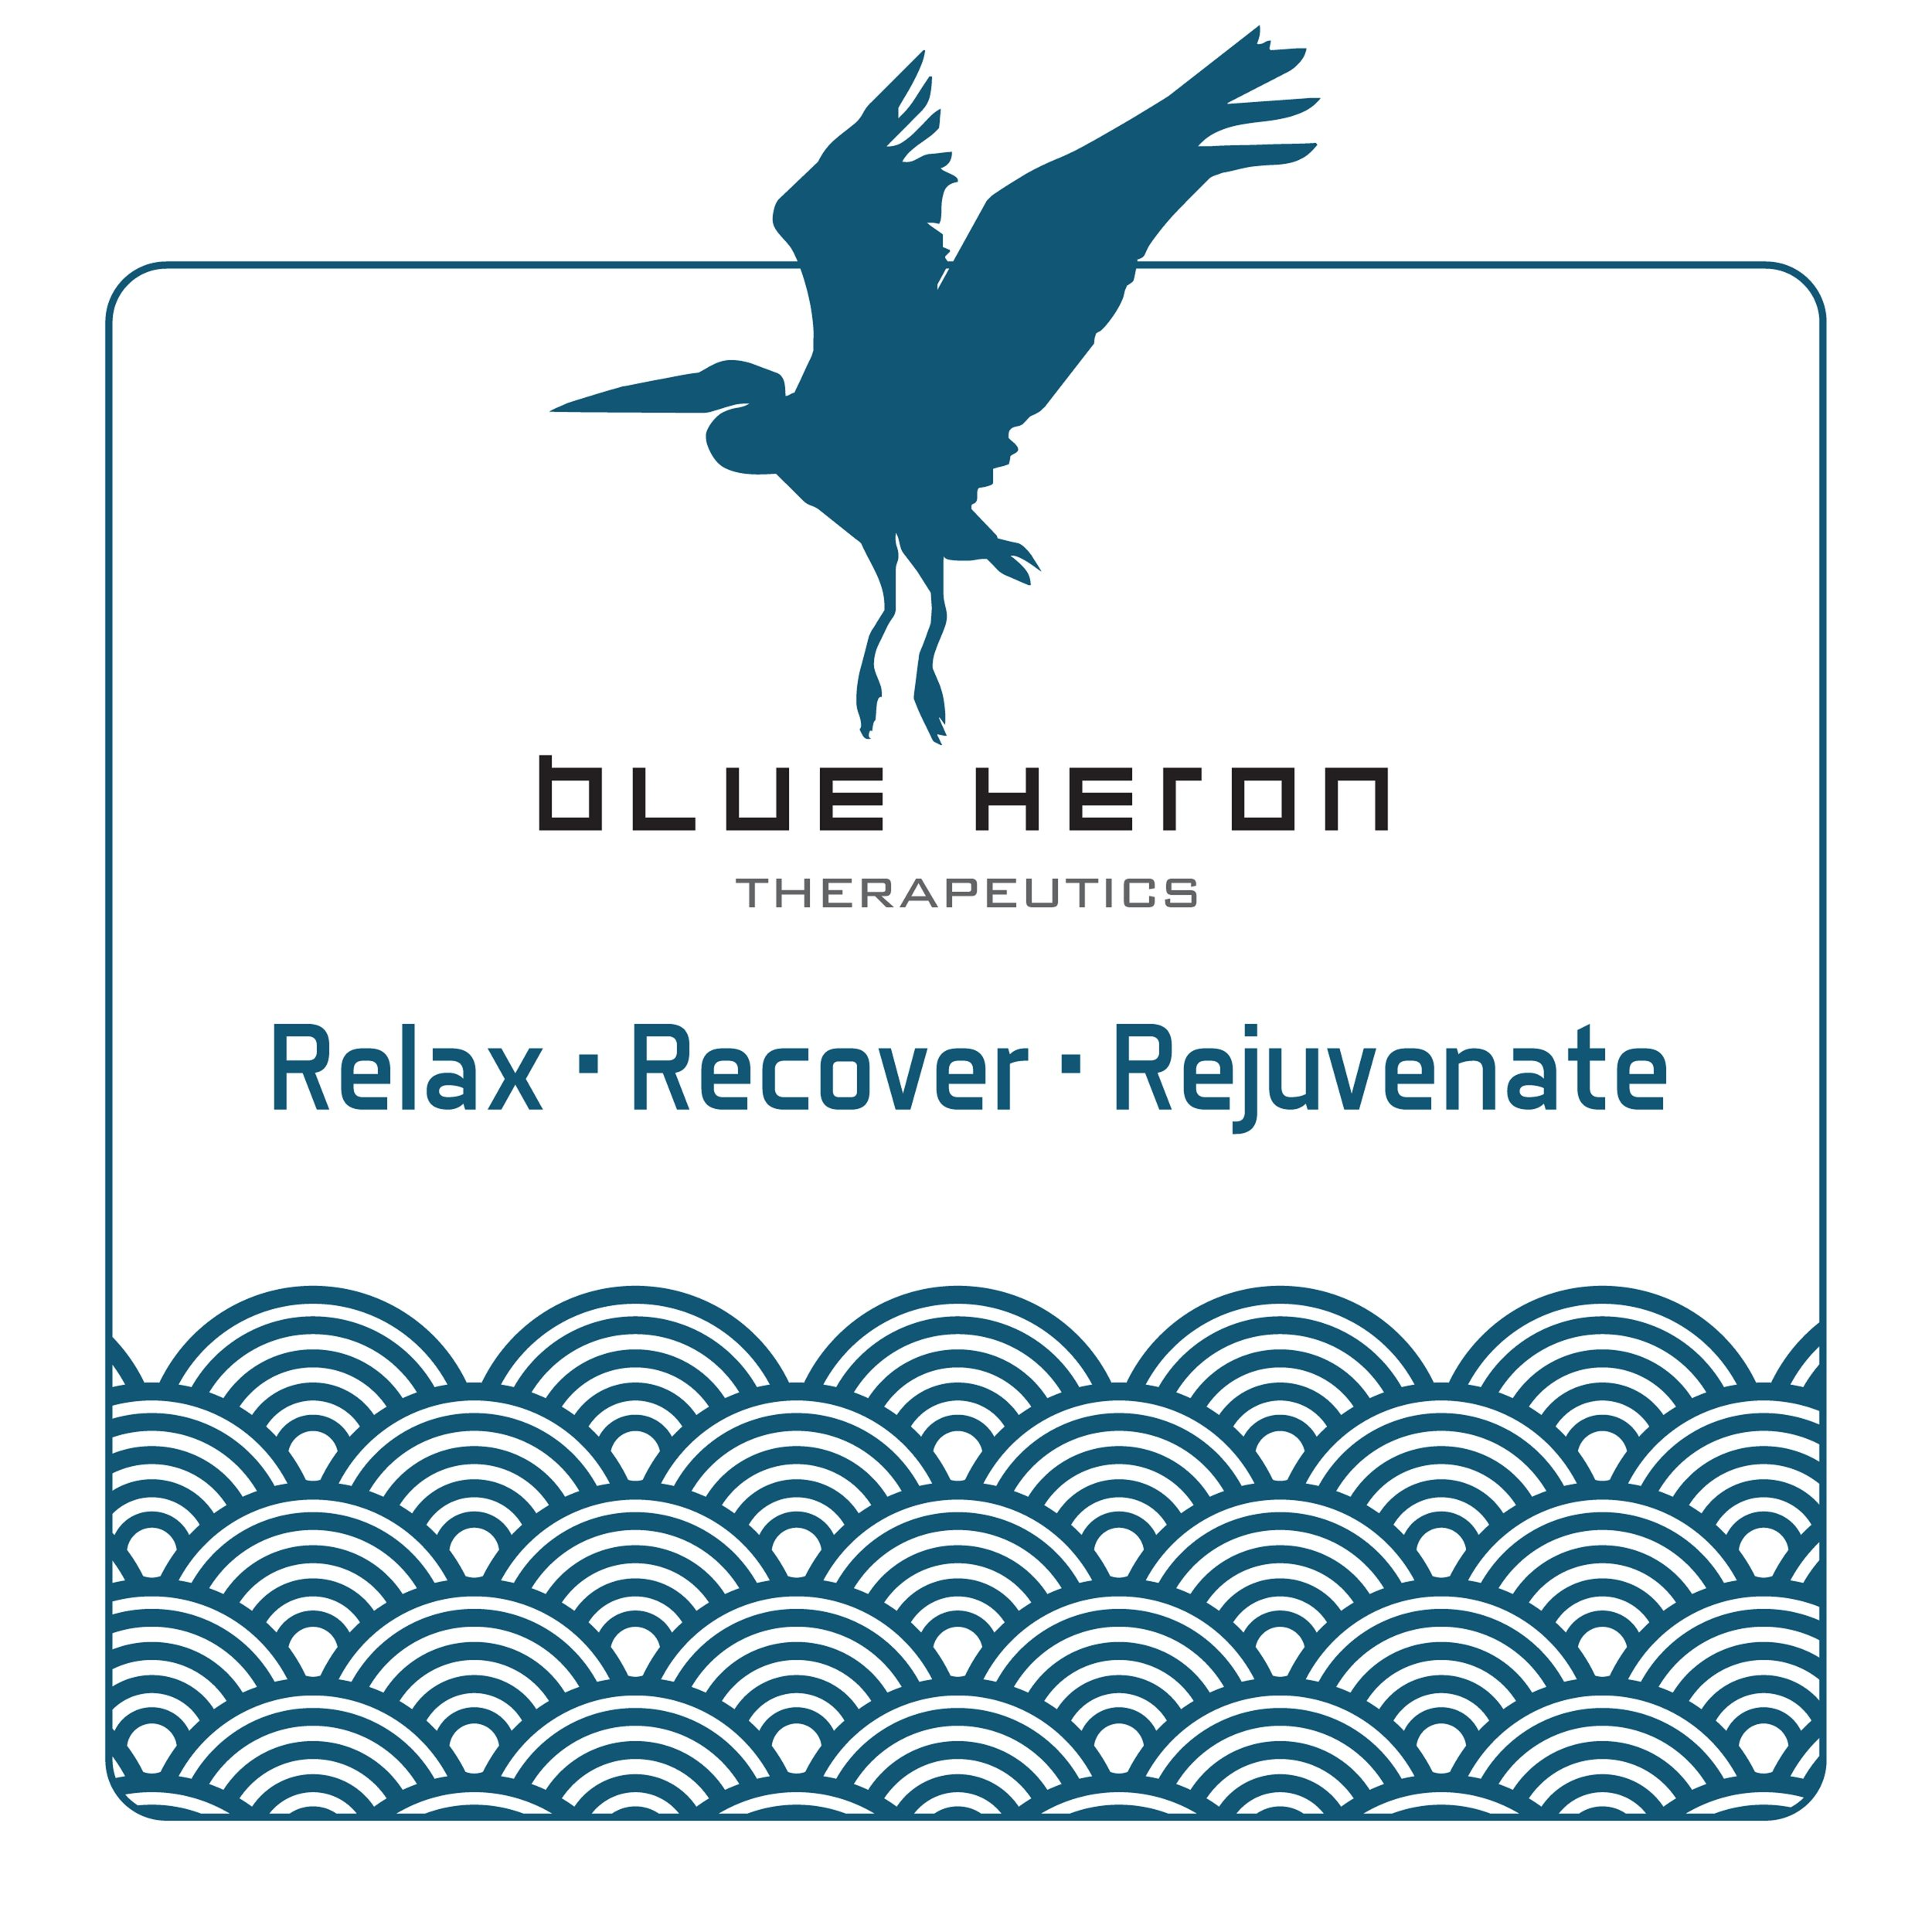 Blue Heron Therapeutics    Blue Heron Therapeutics is a luxury professional massage studio that specializes in Thai Yoga massage, deep tissue massage, meridian fascial cupping, sports and injury rehabilitation, relaxation therapy, prenatal, and Swedish massage. If you are unsure which treatment is best for you, we'll take the time to talk with you and study your habits to determine the temperature, pressure, and modality best suited for your body's conditions.